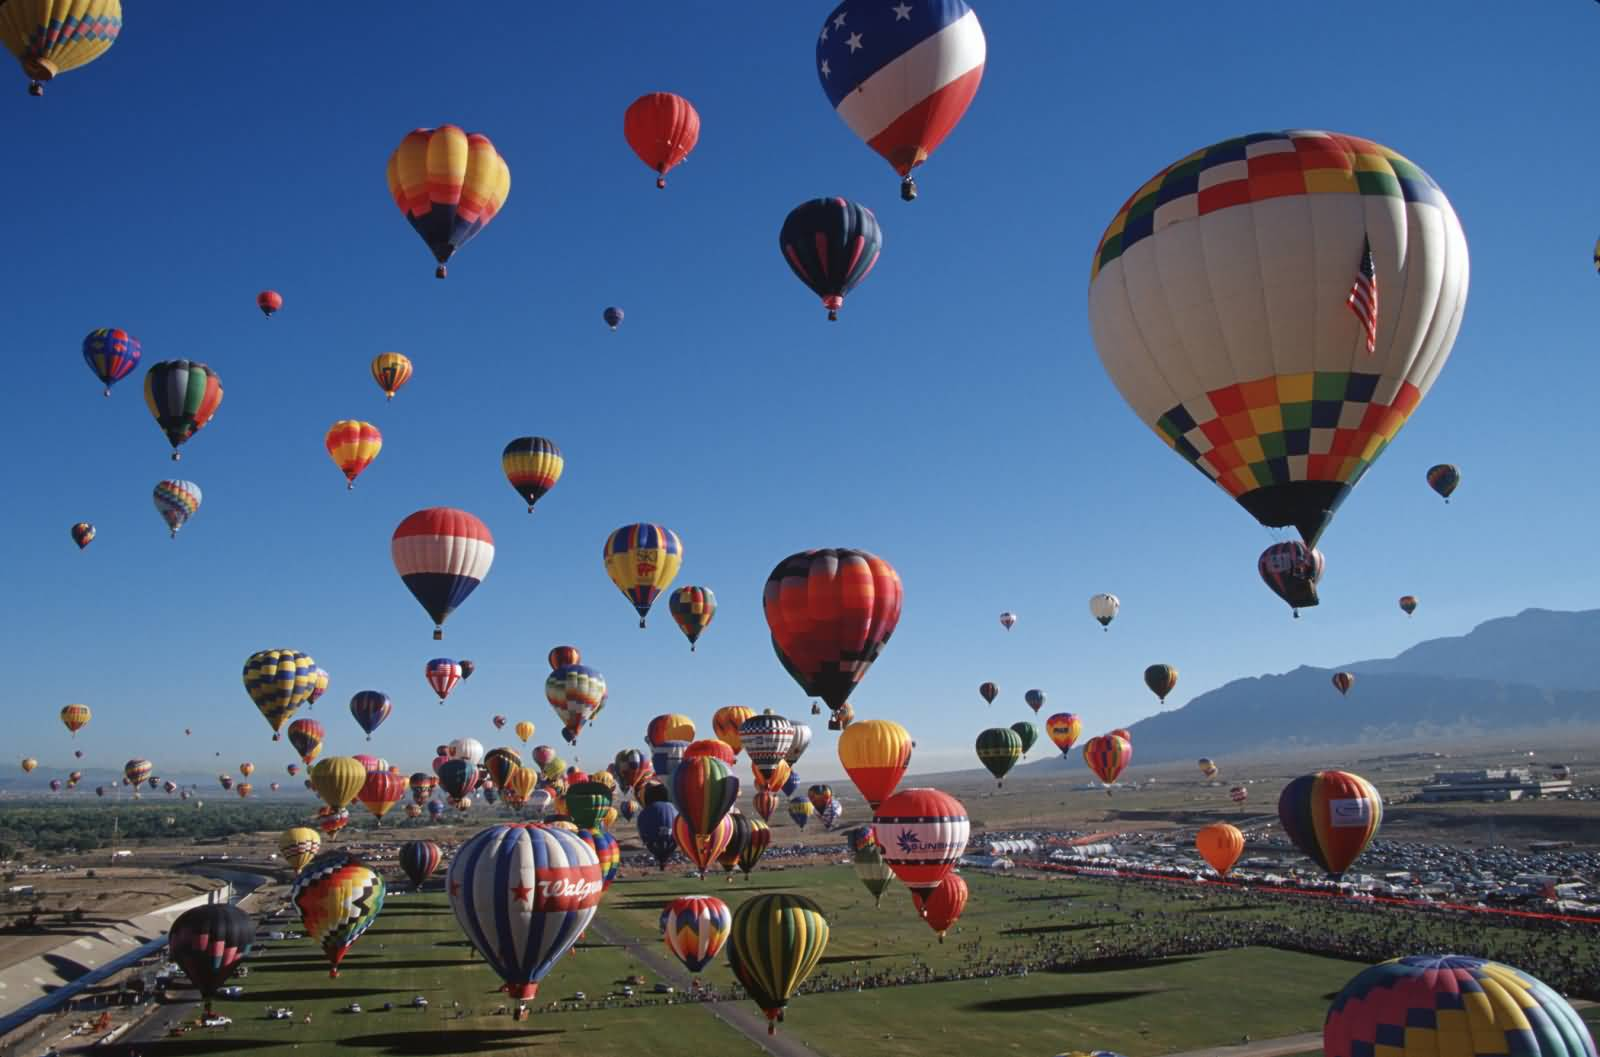 Balloons-In-The-Air-At-The-Albuquerque-Balloon-Festival